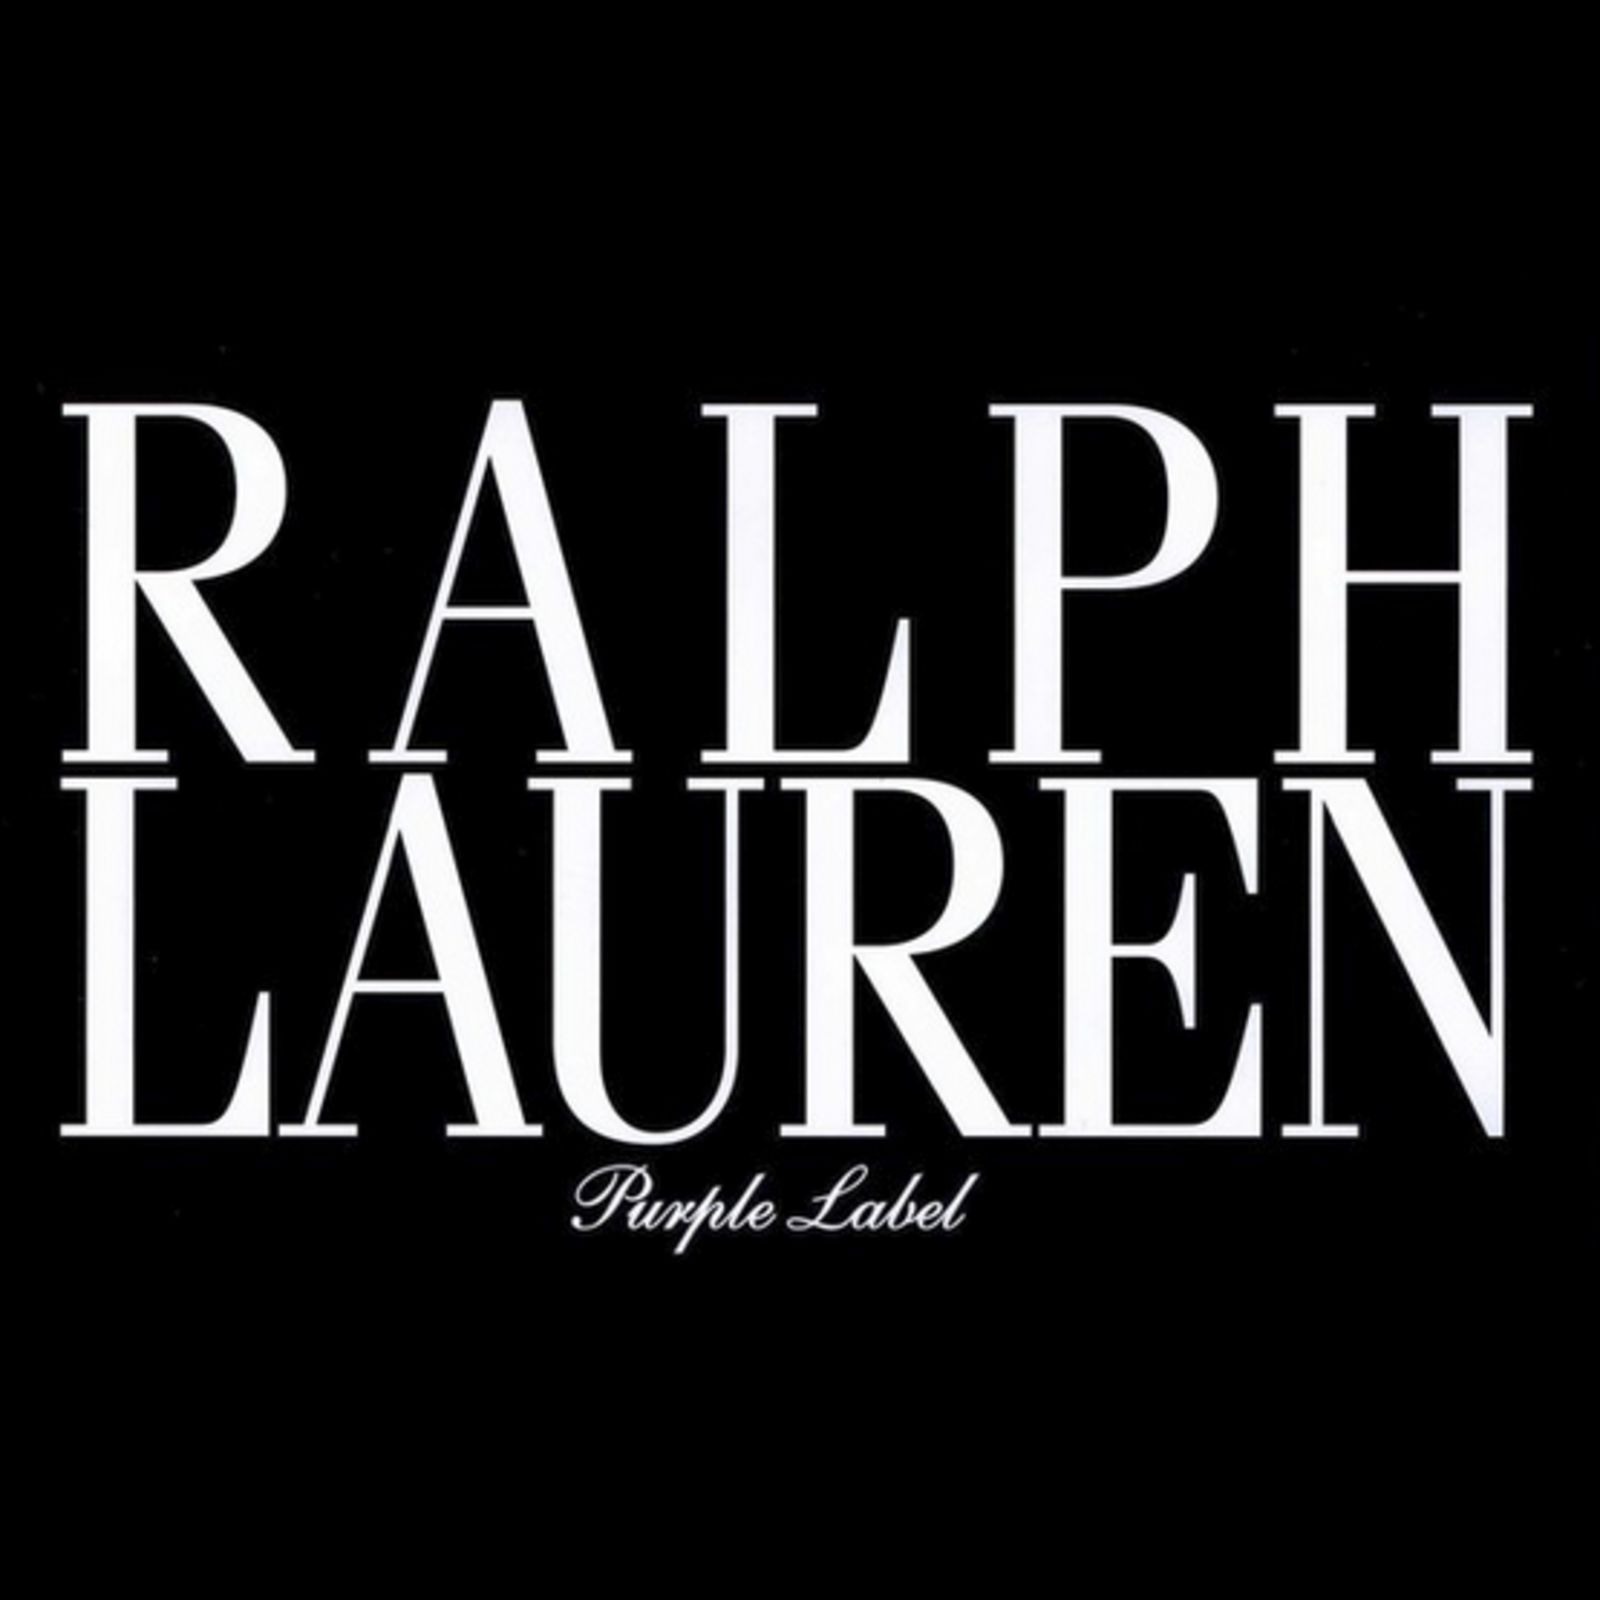 RALPH LAUREN PURPLE LABEL (Image 1)